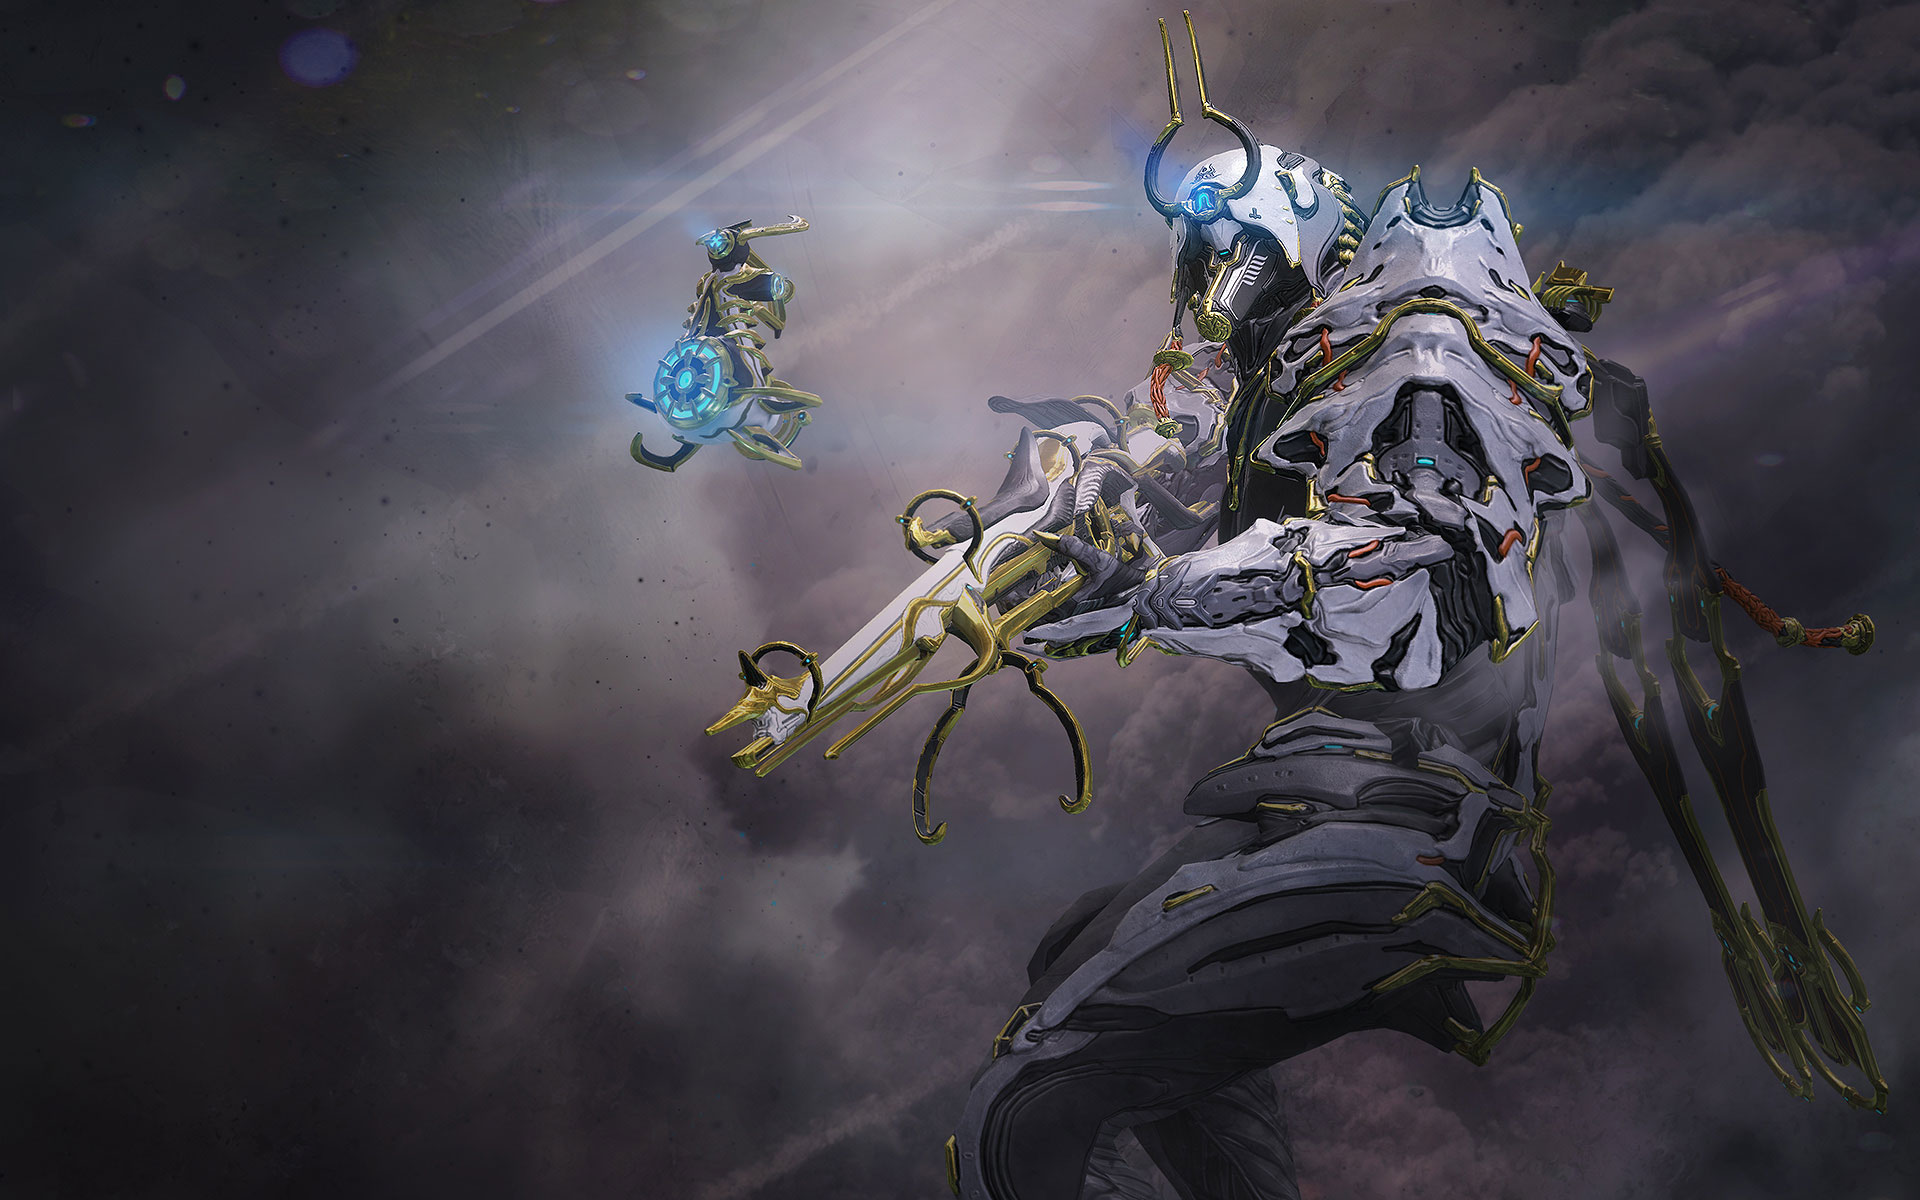 2 ash prime warframe hd wallpapers background images - Warframe background ...